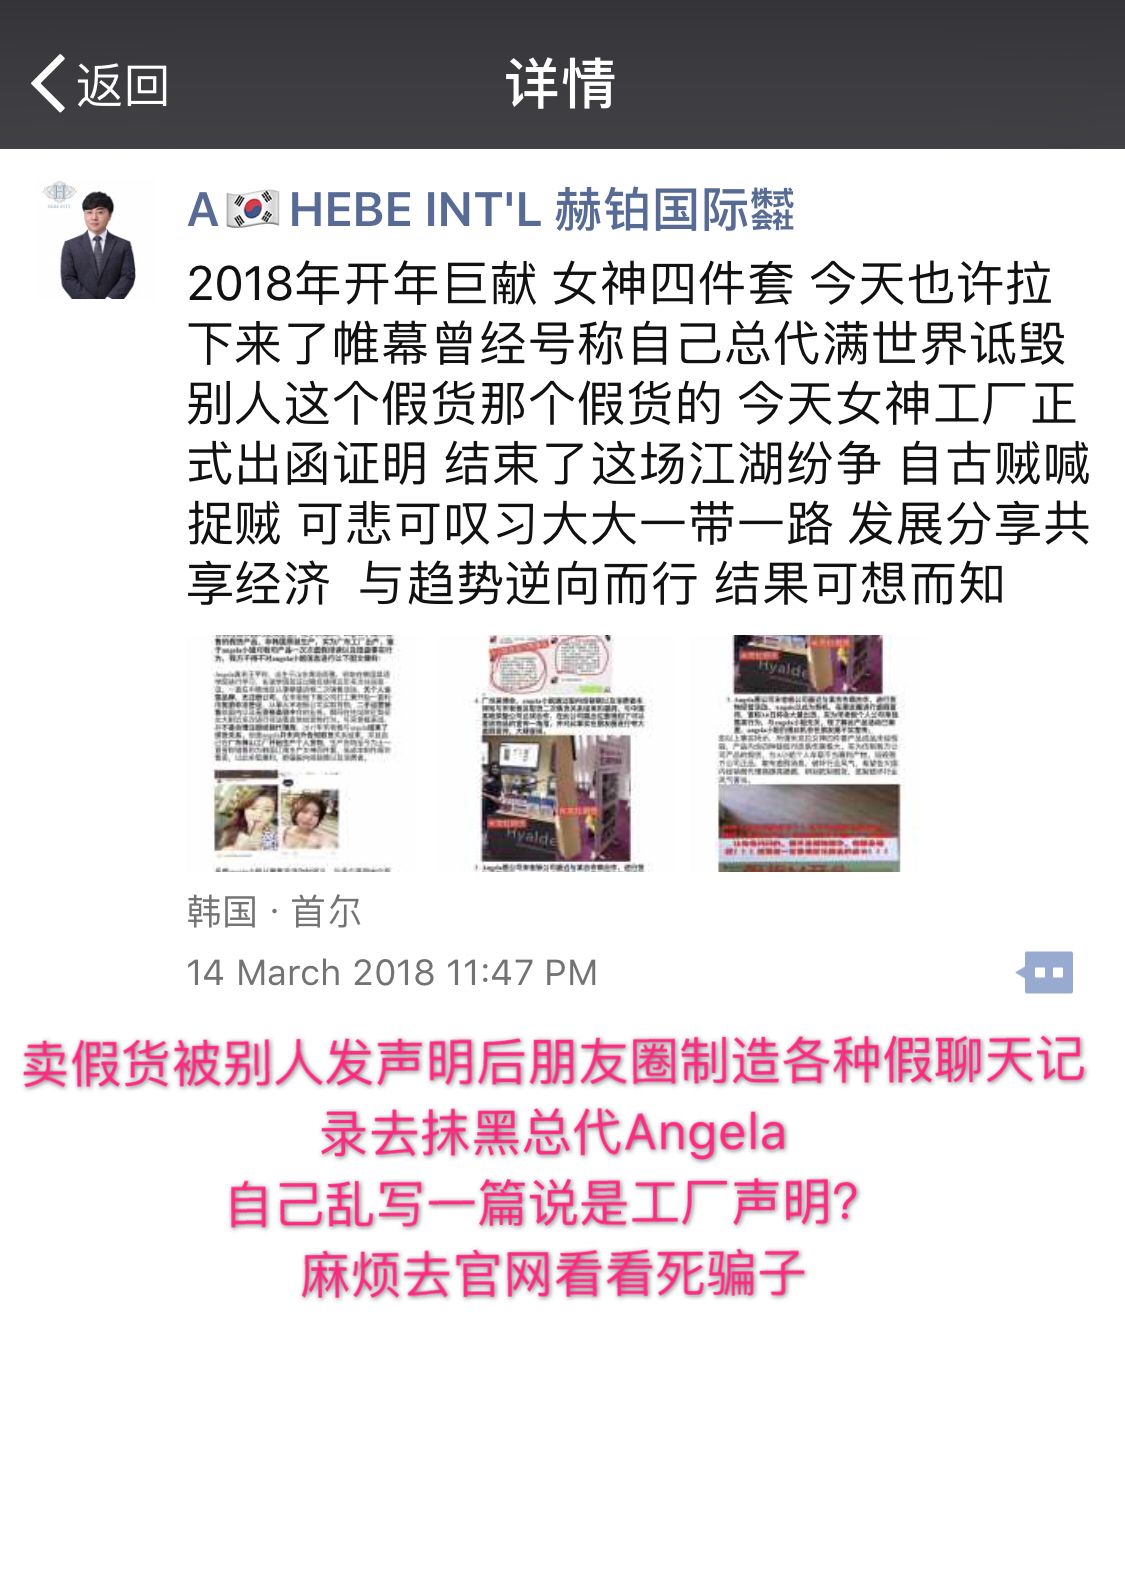 HEBE INTL SKIN CARE ZHAO TRYING TO SPREAD OUT RUMORS OF MIRACLE CARE MAIN DISTRIBUTORS